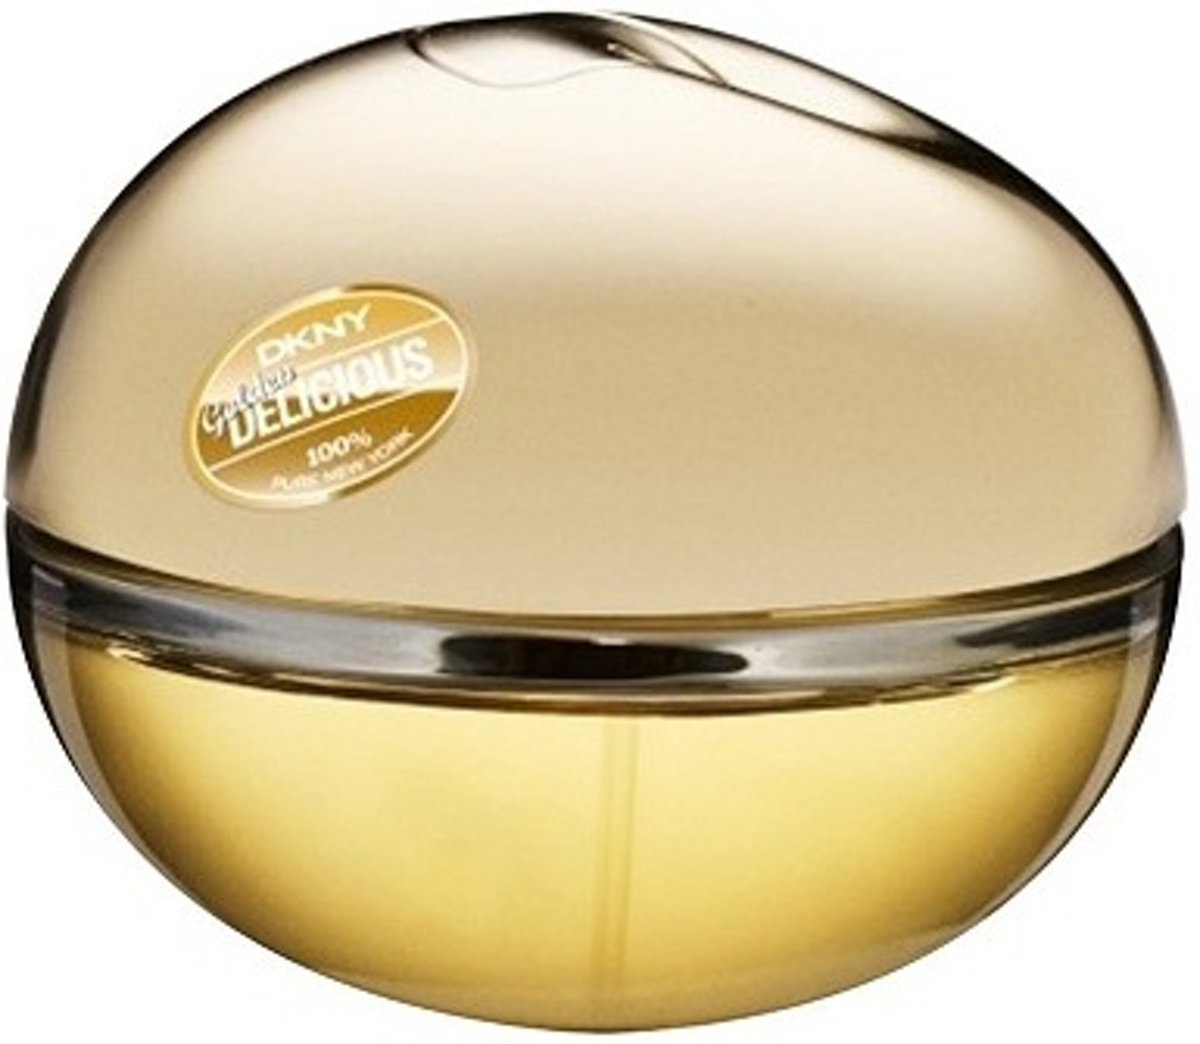 MULTI BUNDEL 3 stuks Donna Karan Golden Deliciouseau De Perfume Spray 100ml